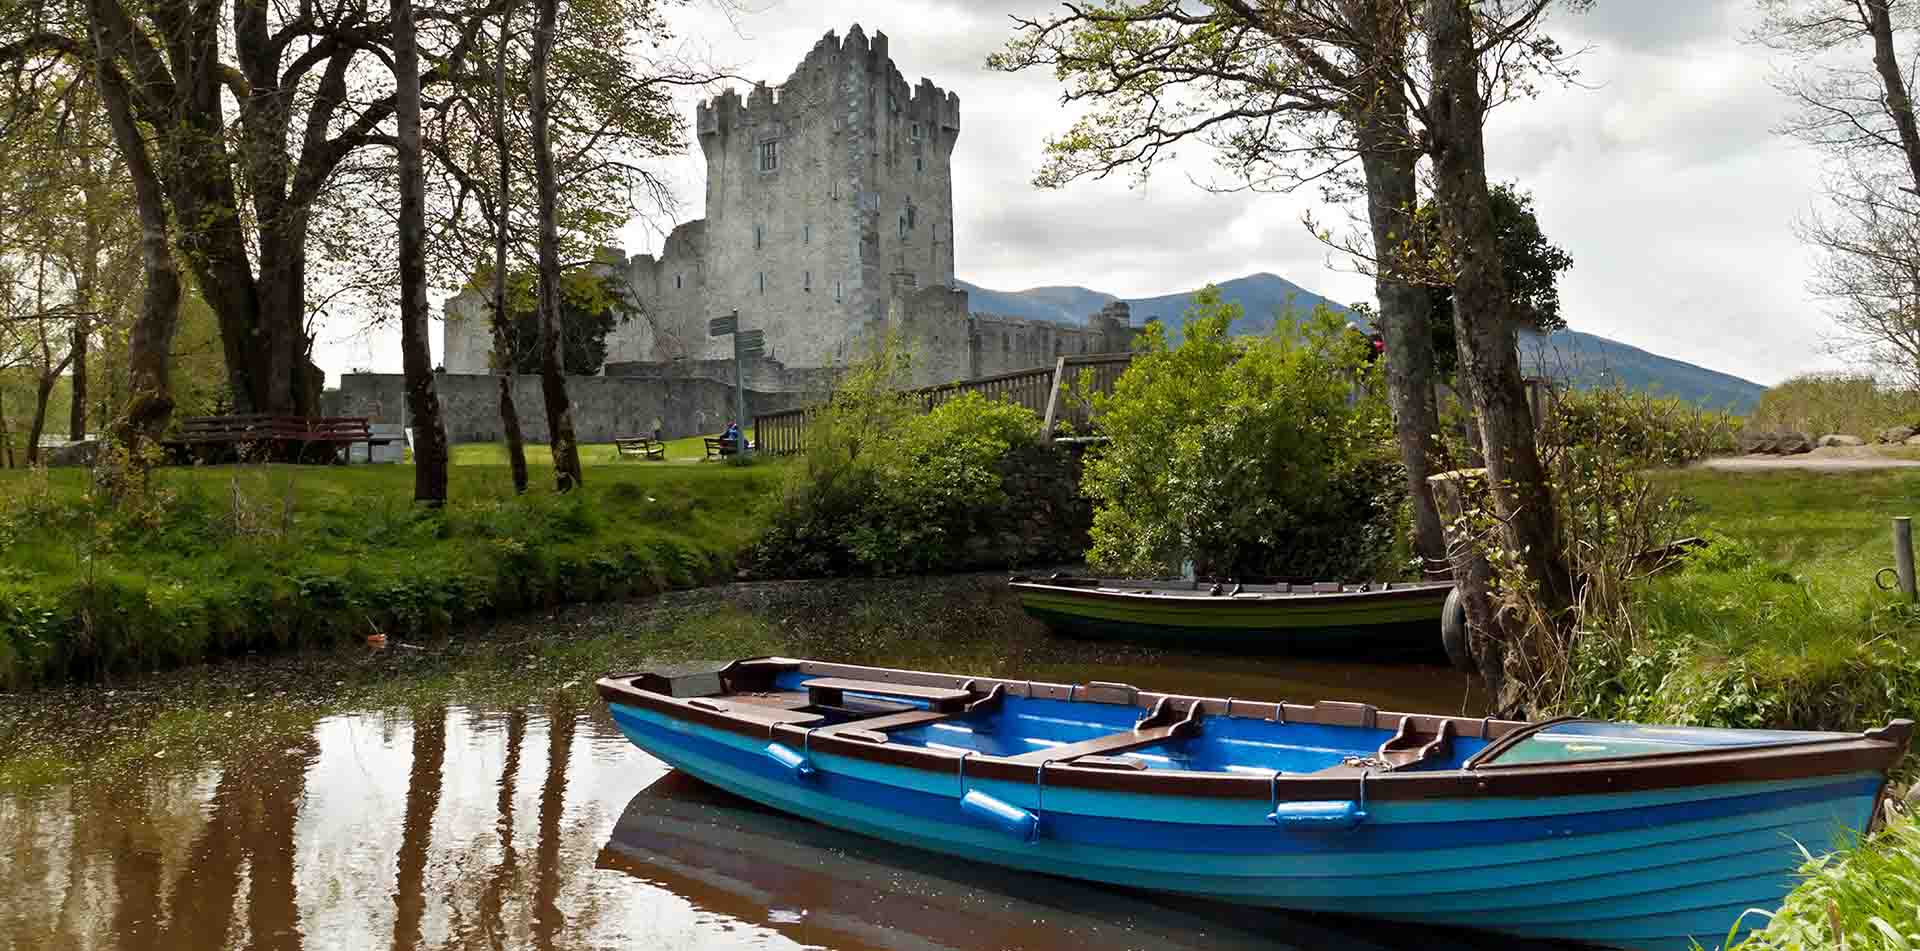 Boat in Foreground of Ross Castle, Ireland